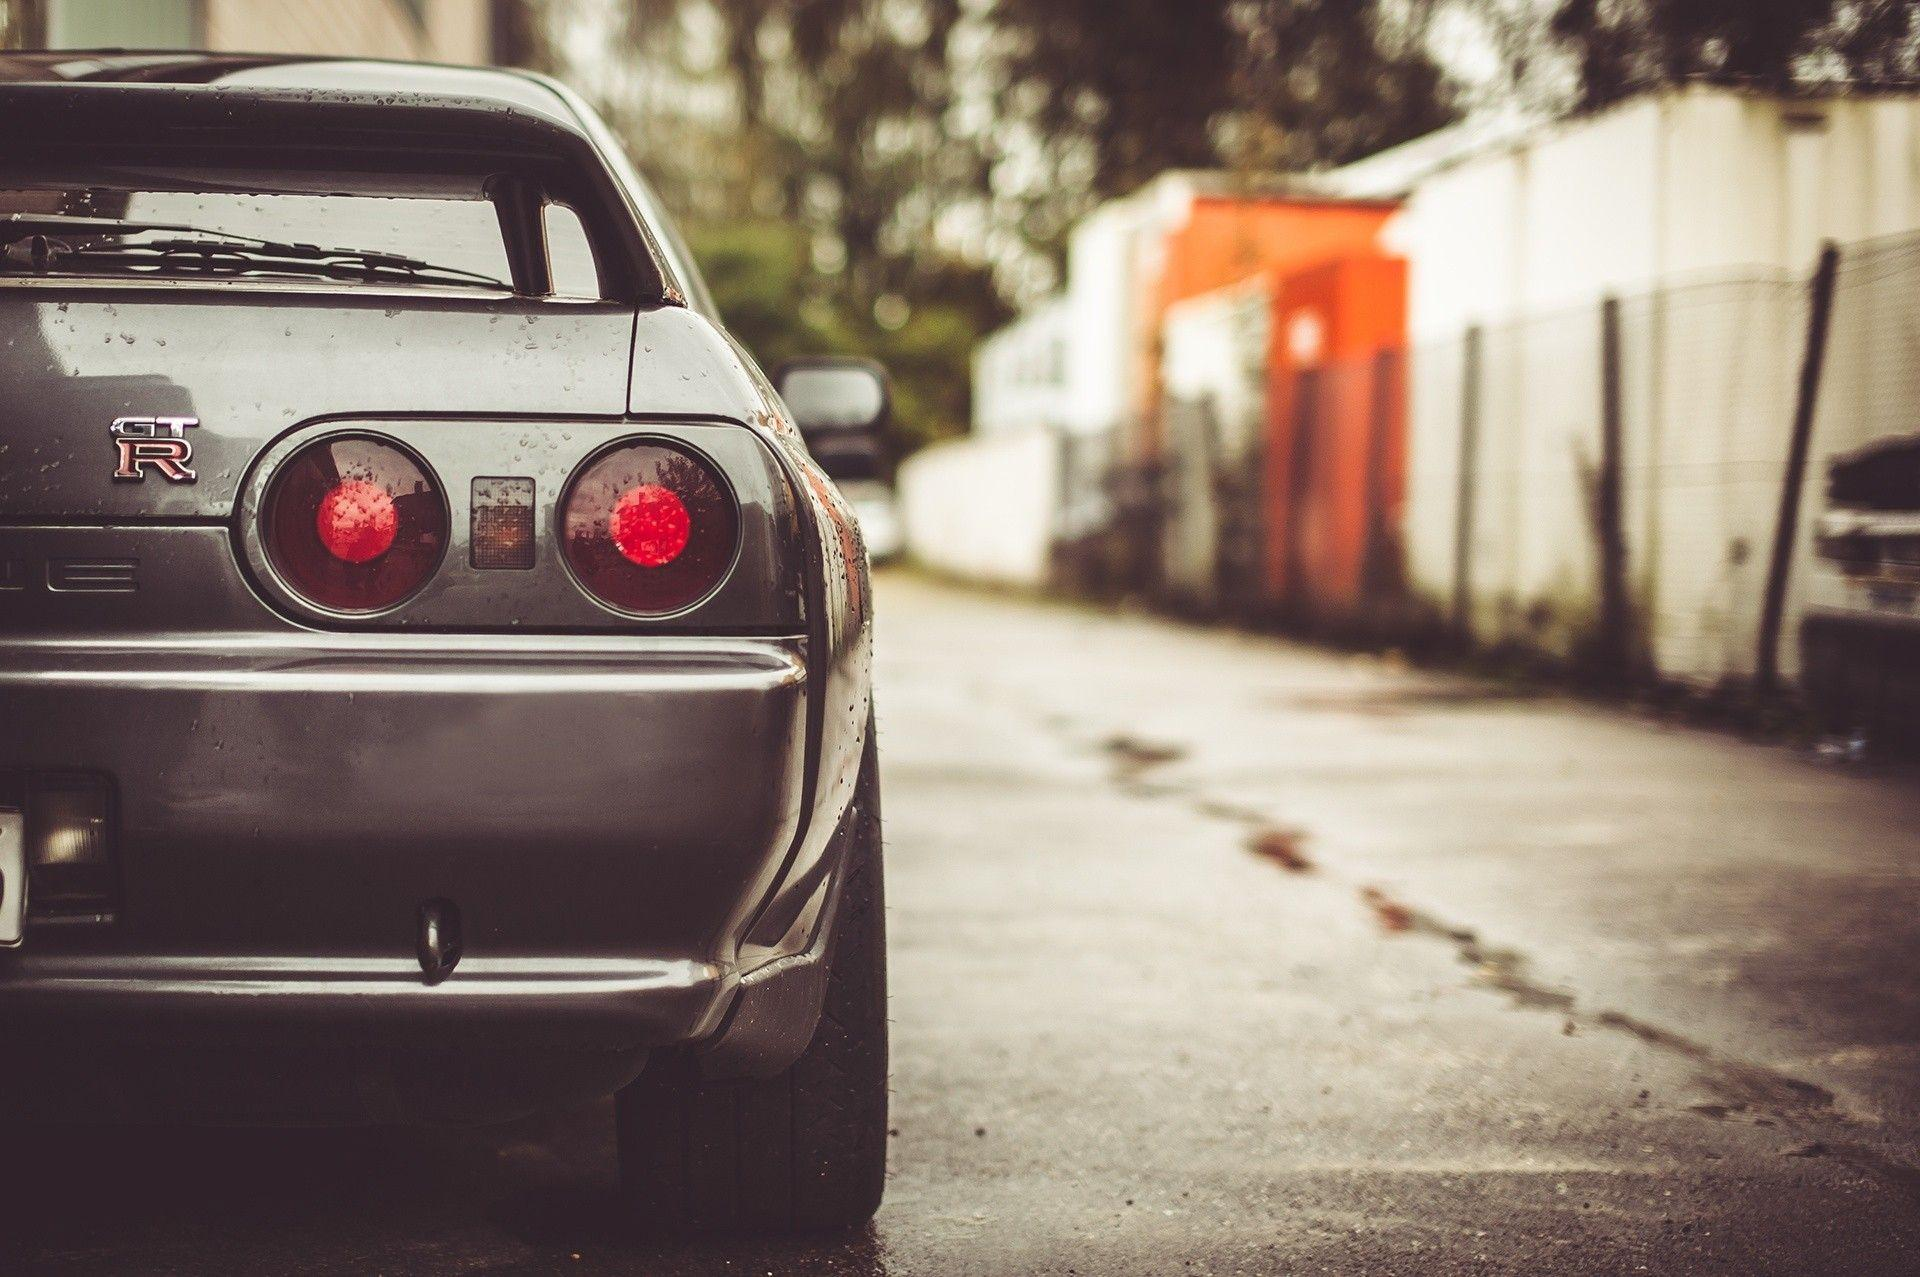 Nissan Skyline Gtr R32 Wallpaper Hd - Krocar | Car News and Car Reviews